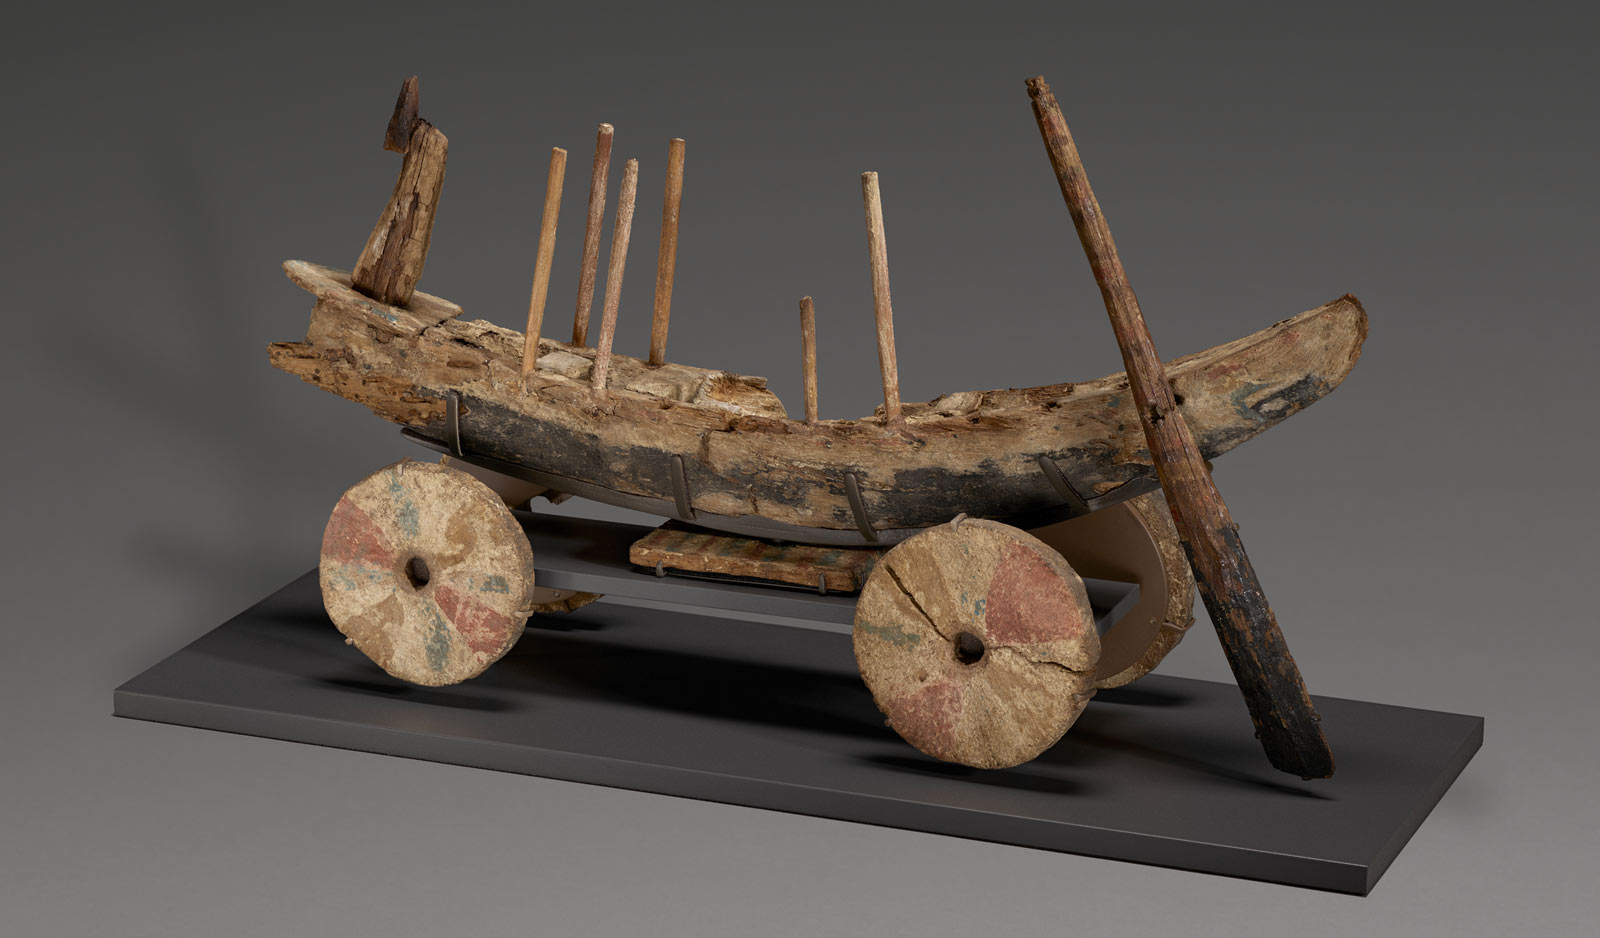 A worn and weathered wooden boat model with bright but faded paint. The boat has four wheels below, some rods jut up from the center and a rudder hangs down.